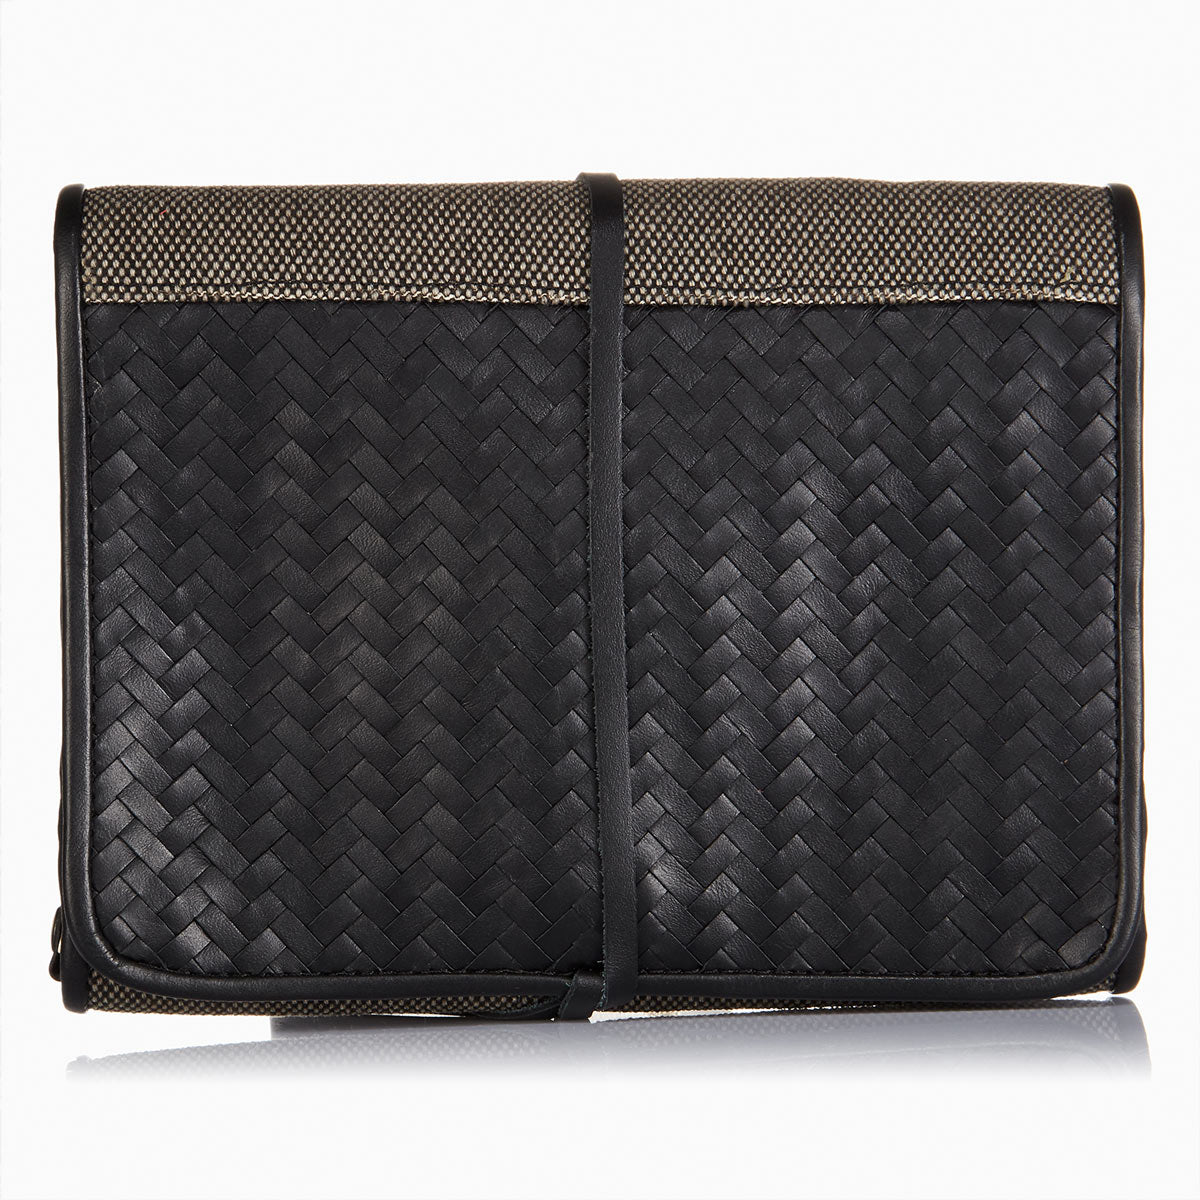 Herringbone Wash Roll, Black: Men's Toiletry Hanging Travel Bag